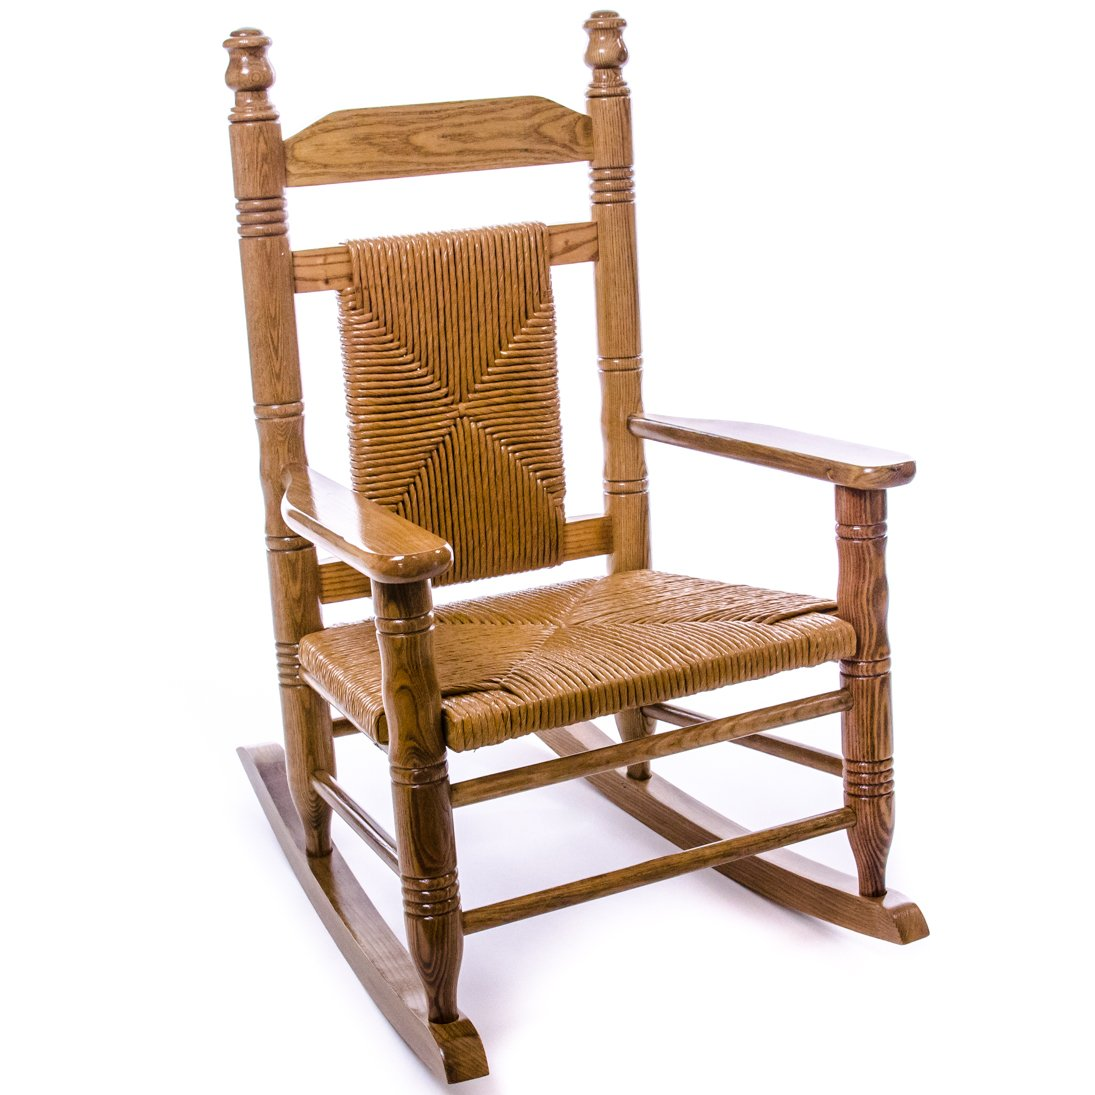 Woven Child Seat Rocking Chair Hardwood Home Furniture Indoor Chairs Er Barrel Old Country